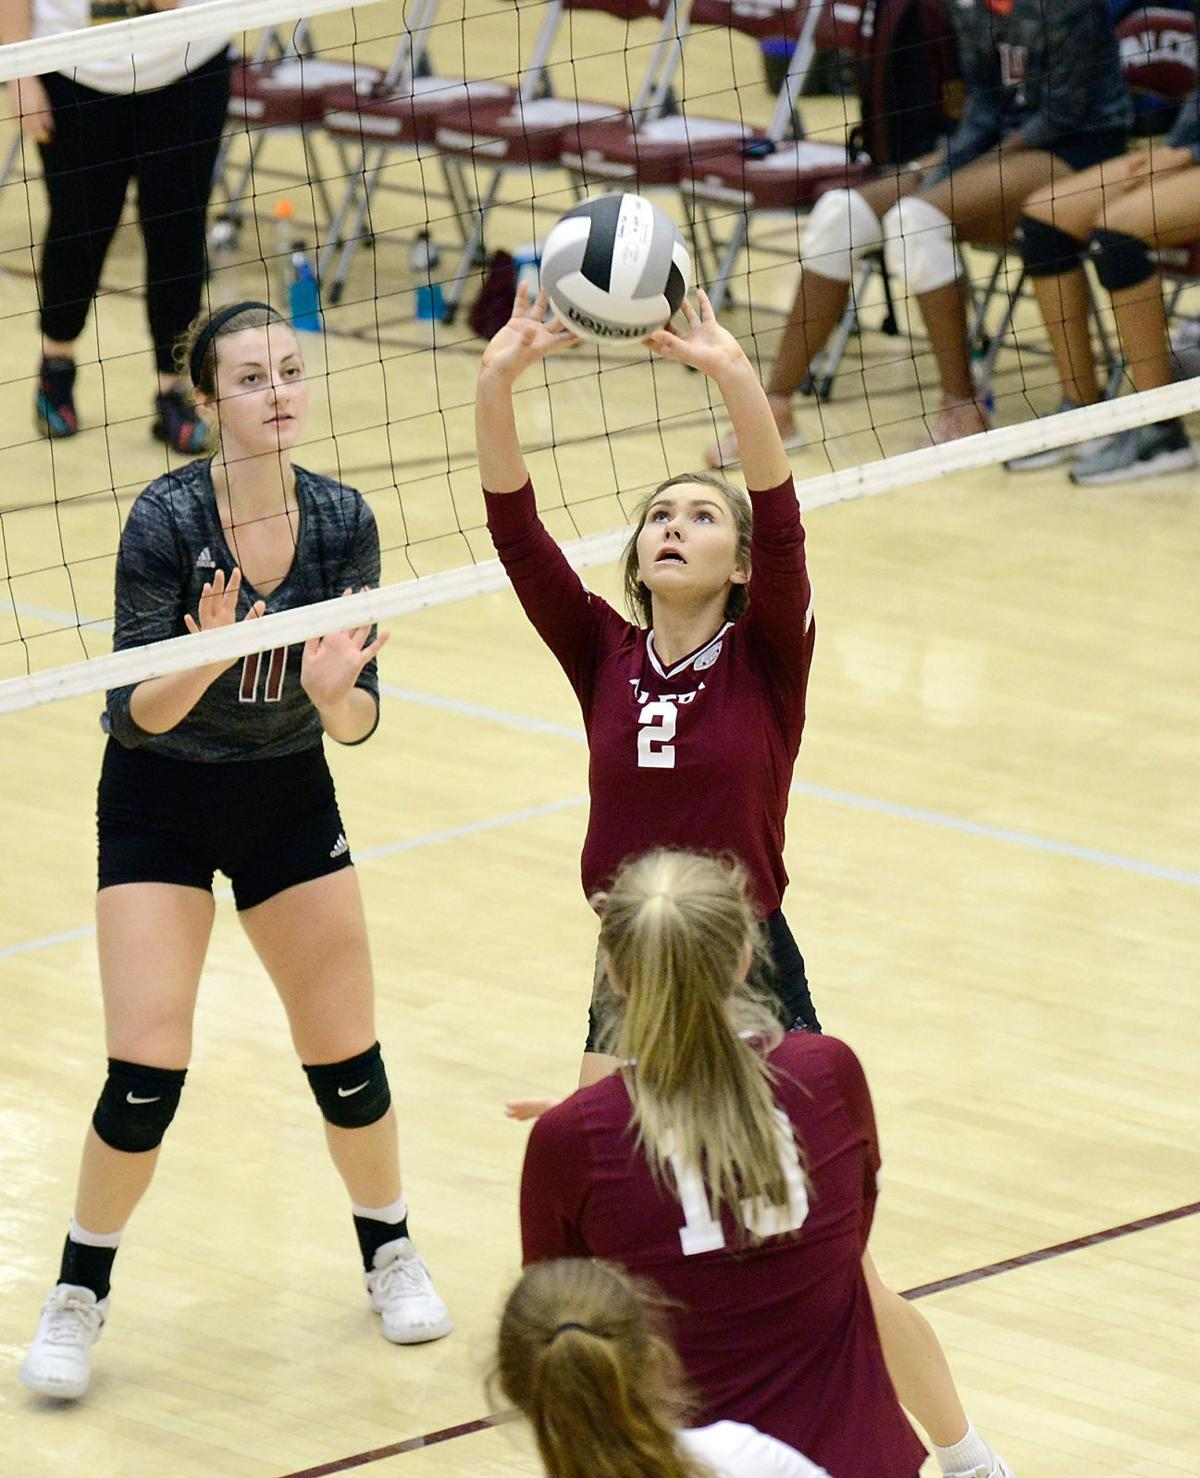 VOLLEYBALL: Alcoa's Cori Depew and Kylie Haas vs Fulton